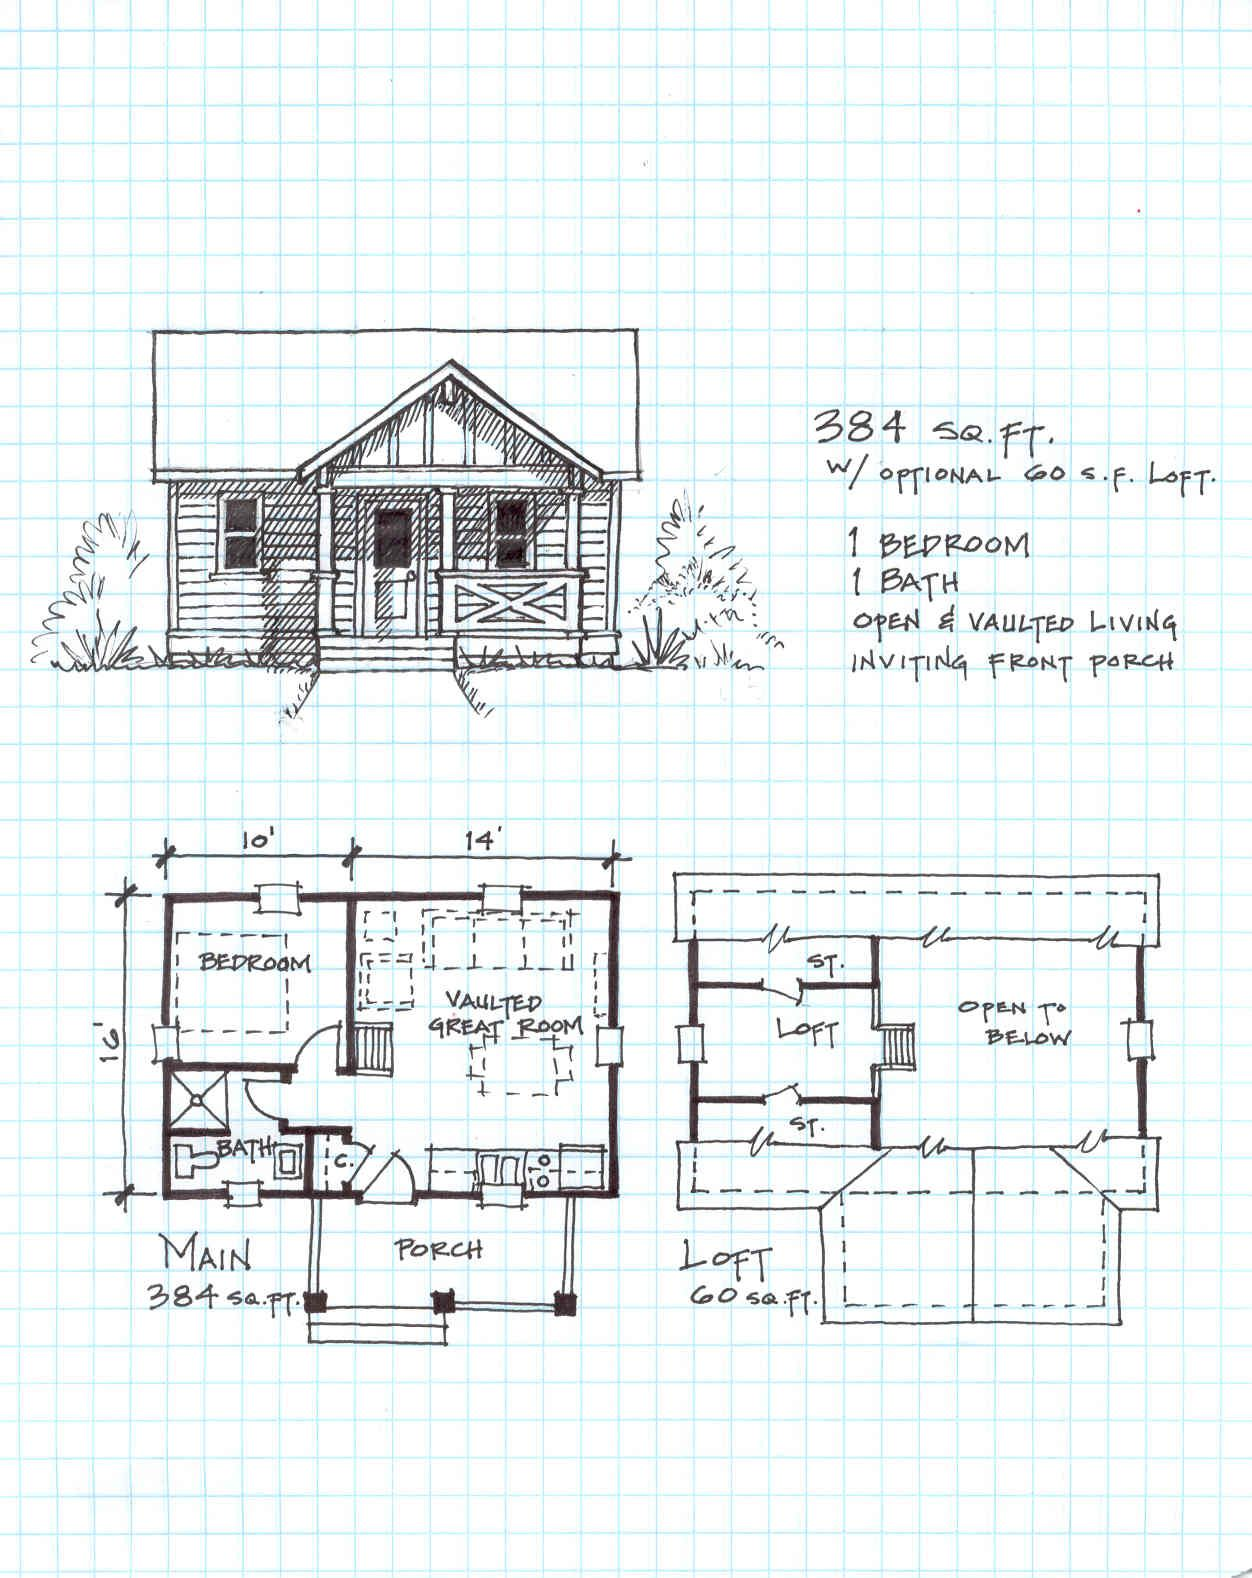 12x24 cabin plans google search montana pinterest for Sleeping cabin plans